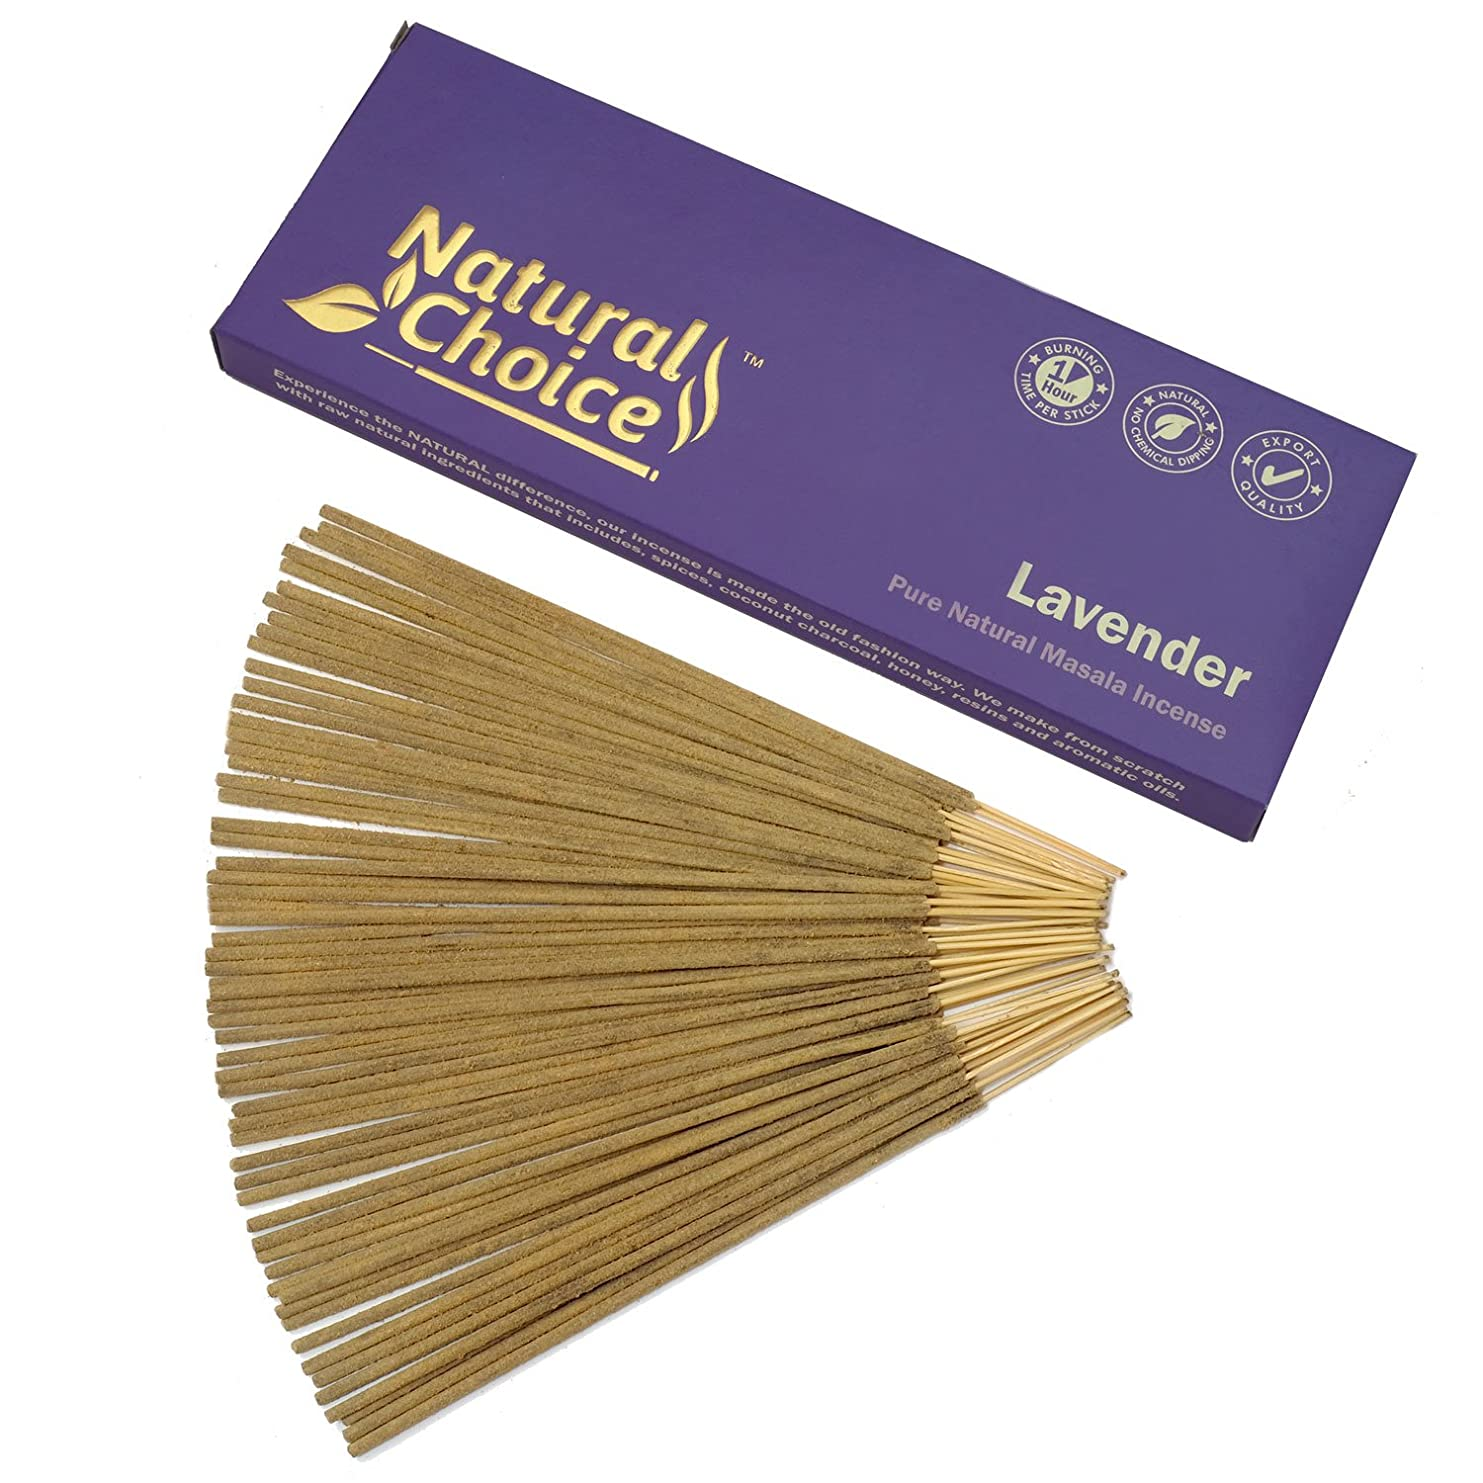 合法絞る司書Natural Choice Incense Lavender Incense Sticks 100?gm?–?Made from Scratch?–?No Dipping